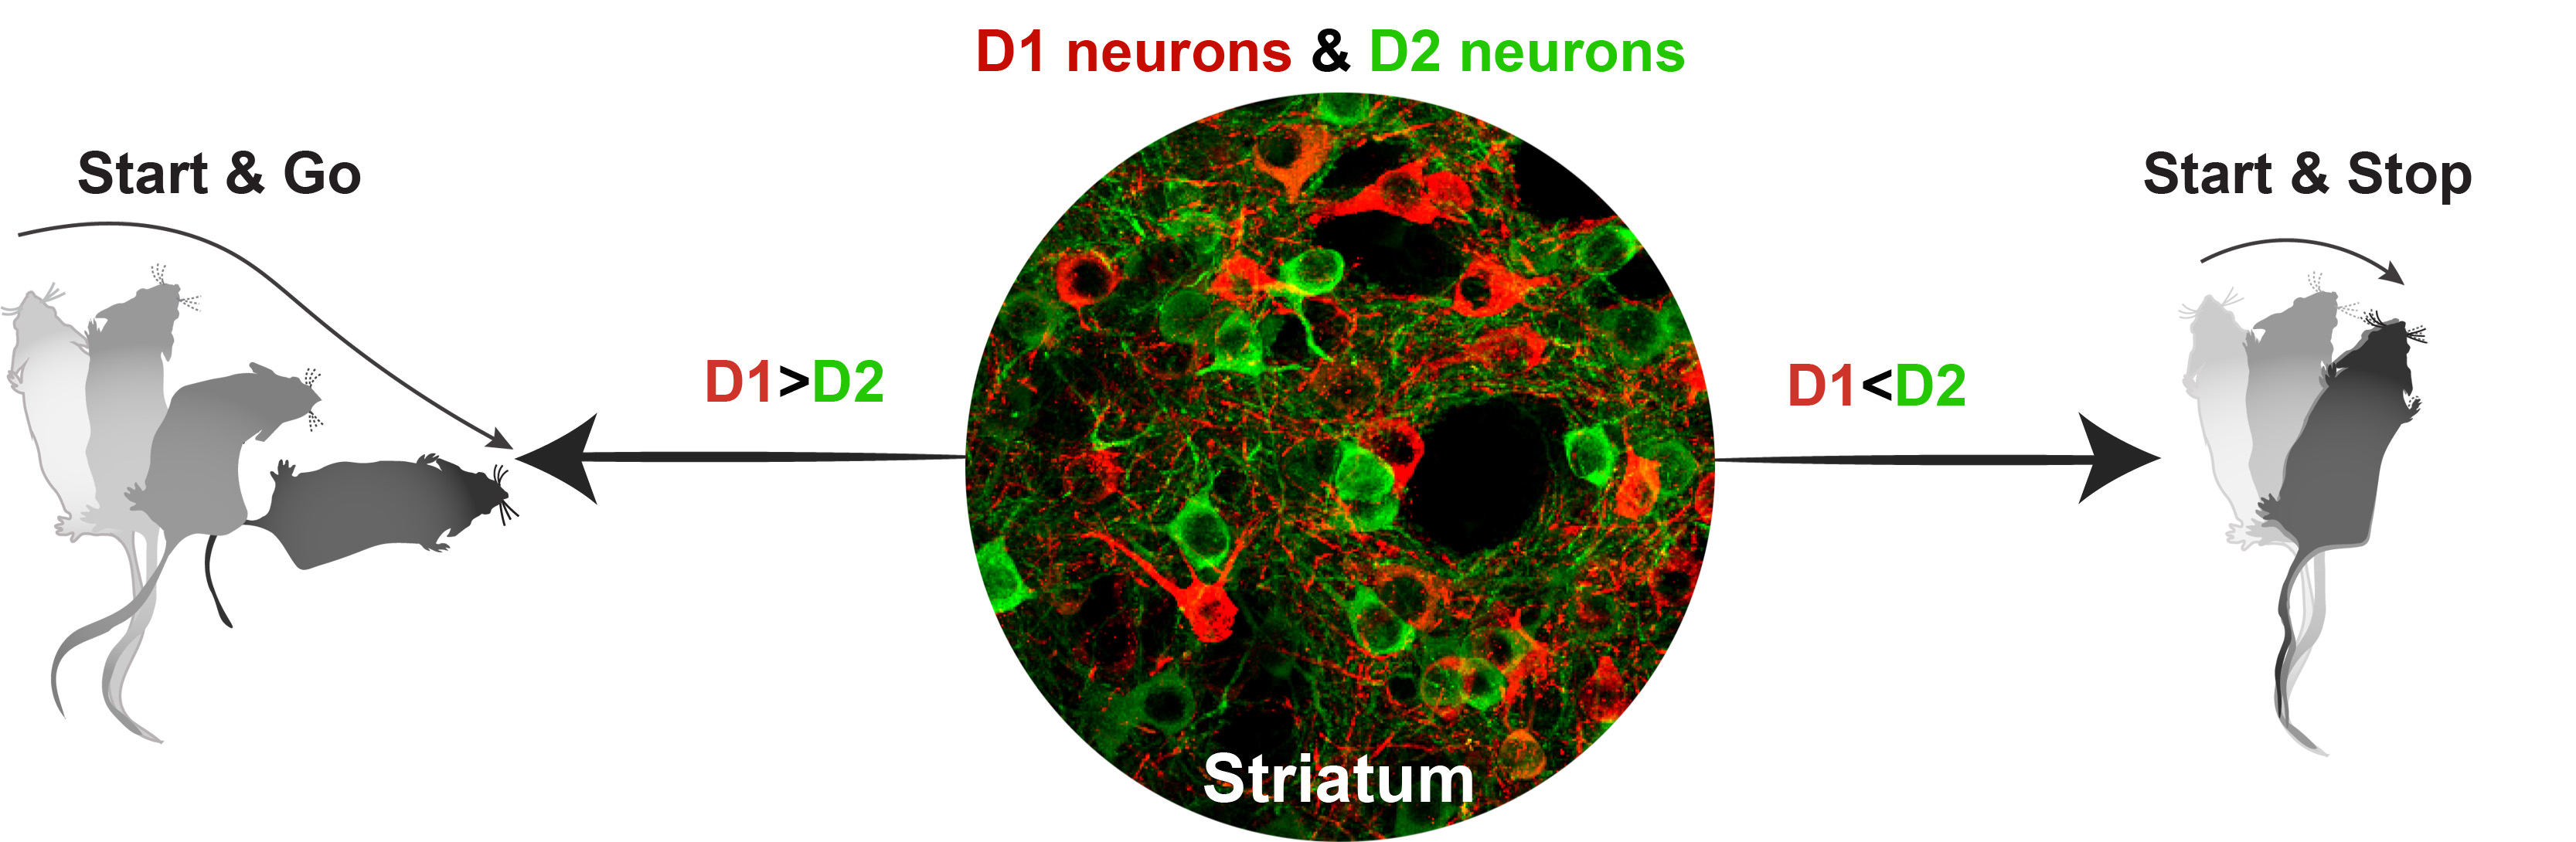 Micrograph of D1 and D2 Neurons with Illustration of Mouse Movements